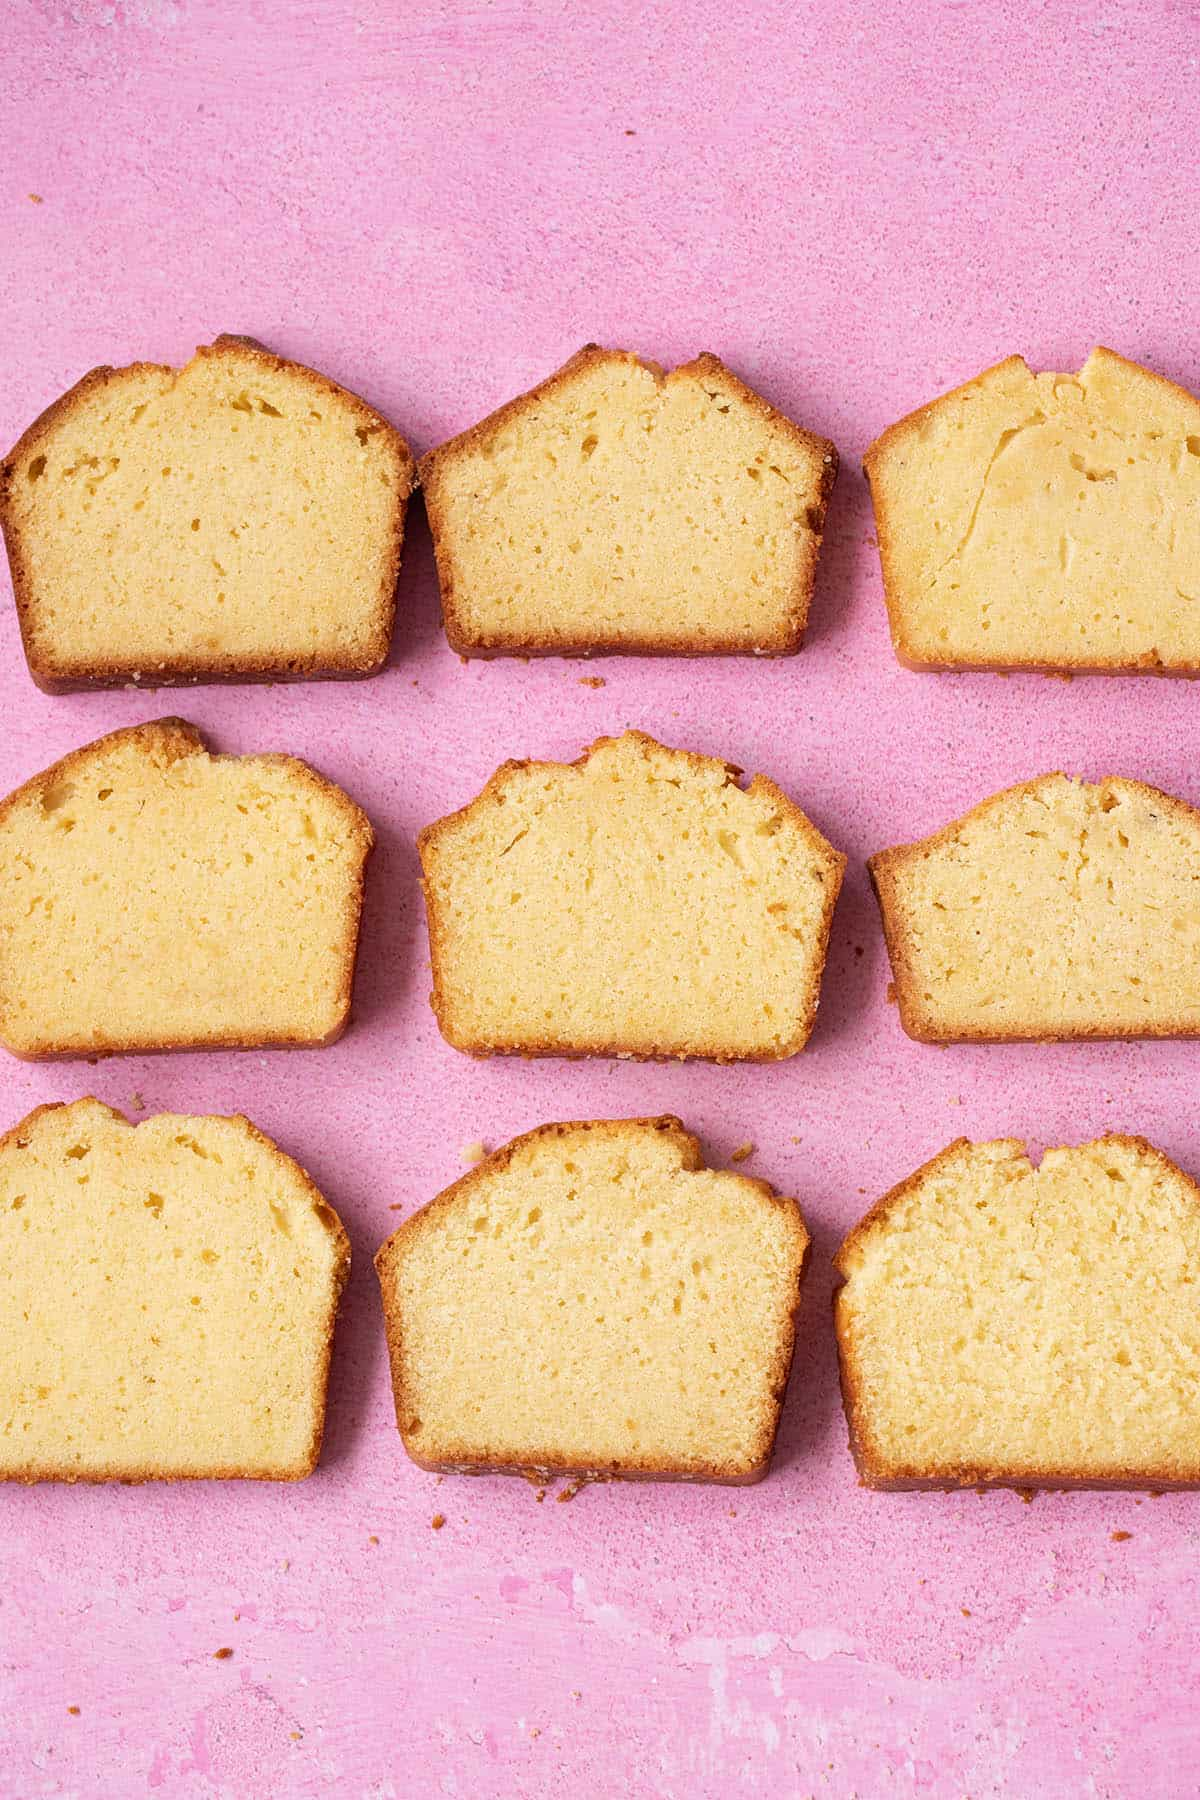 9 different types of Pound Cake on a pink background